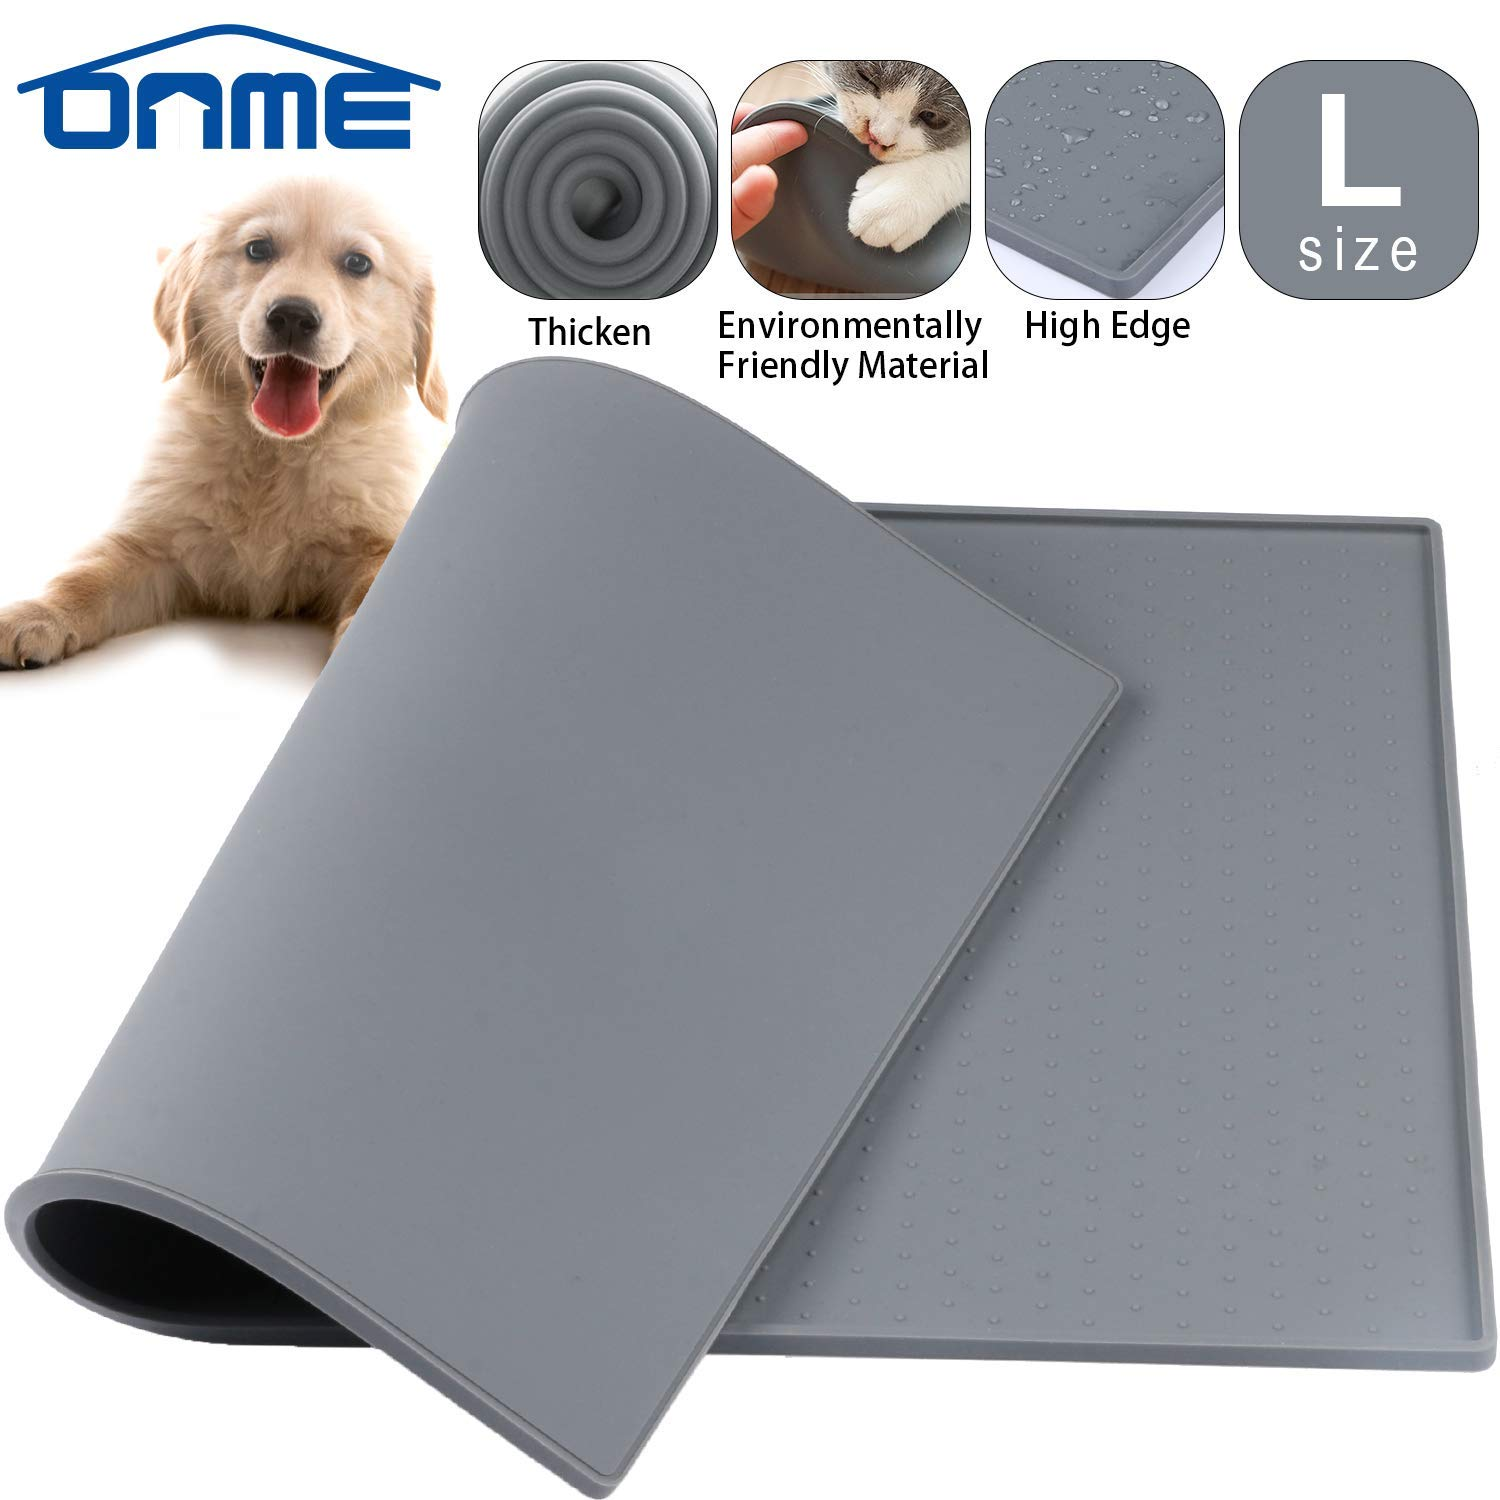 ONME Dog Feeding Mat, FDA Grade Silicone Waterproof Pet Food Mat, Non Slip Dog Bowl Placemat